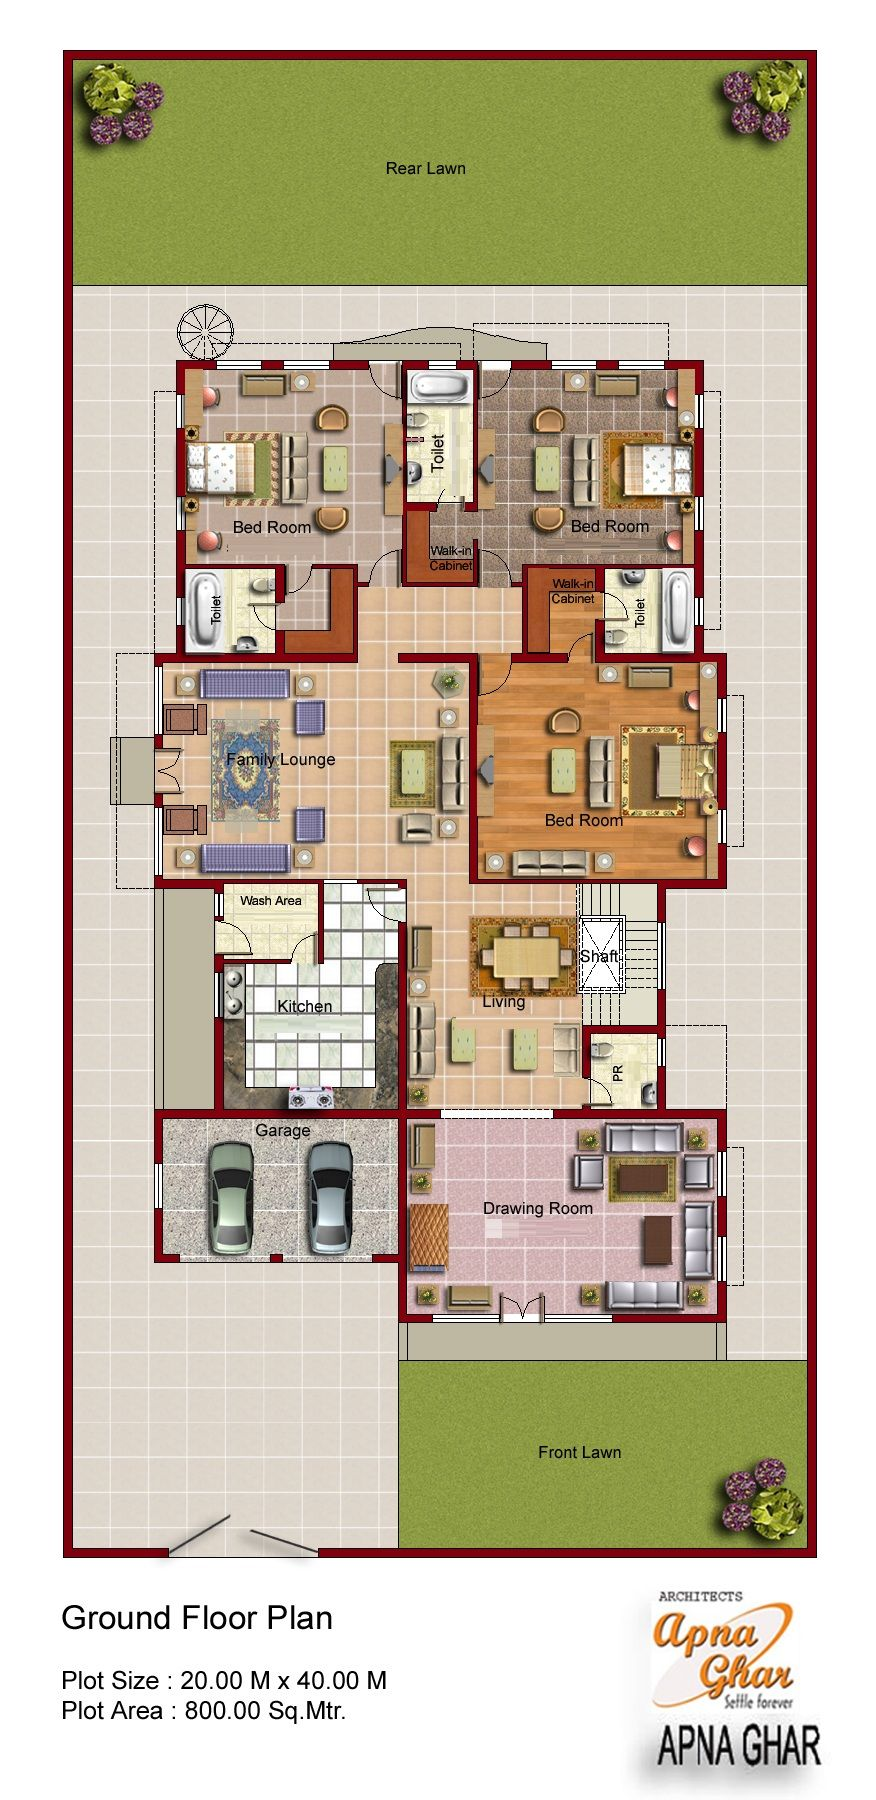 2d floor plan for modern duplex 2 floor house area 800 for House floor plans architecture